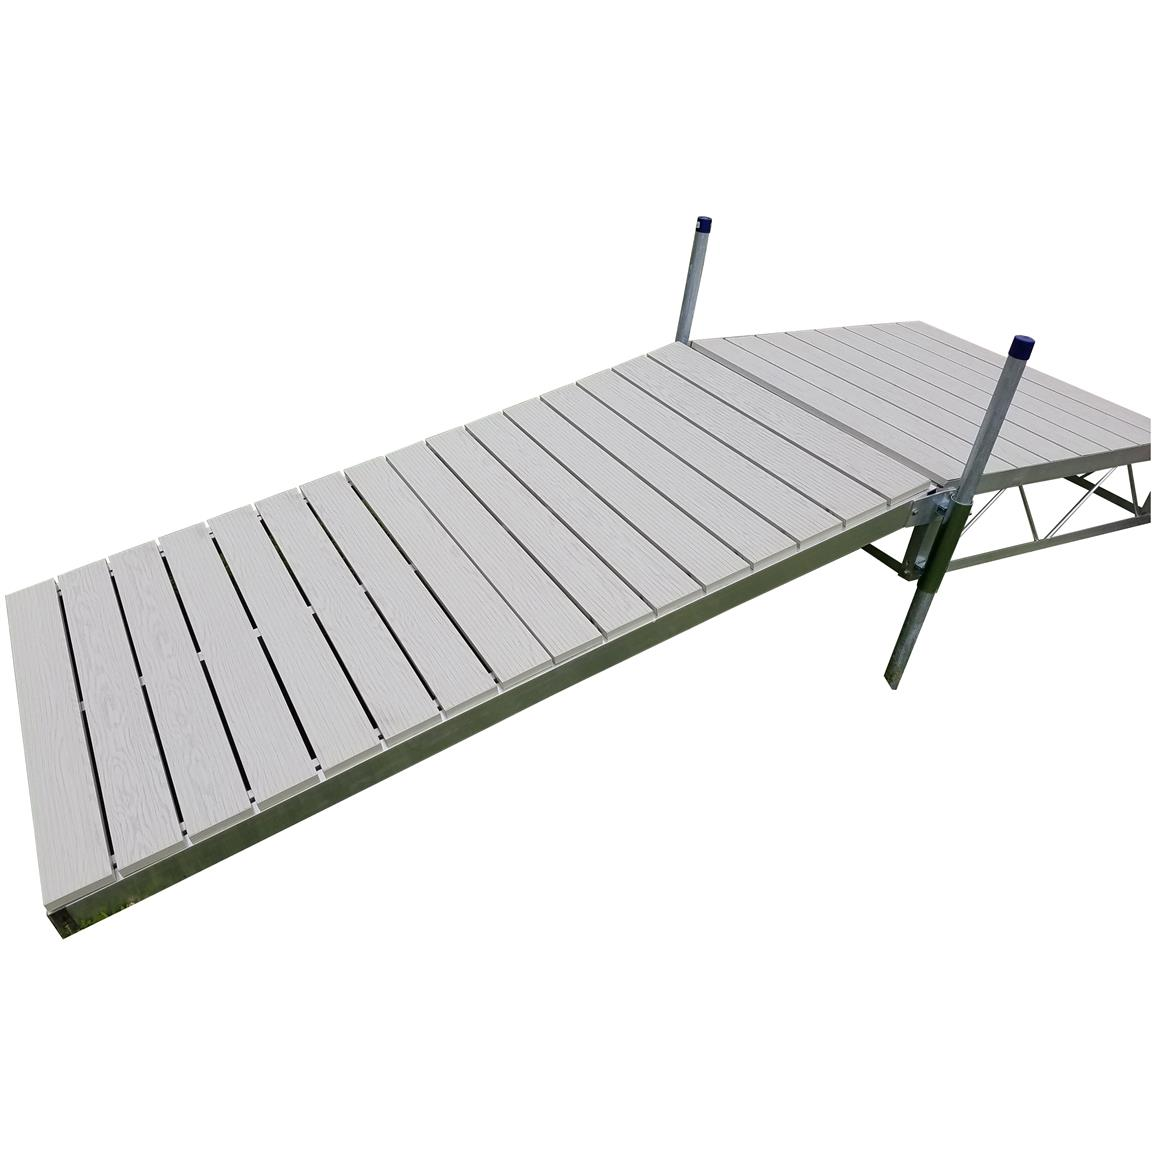 Patriot Shore Ramp Kit, 8 foot Aluminum Deck, Aluminum Gray